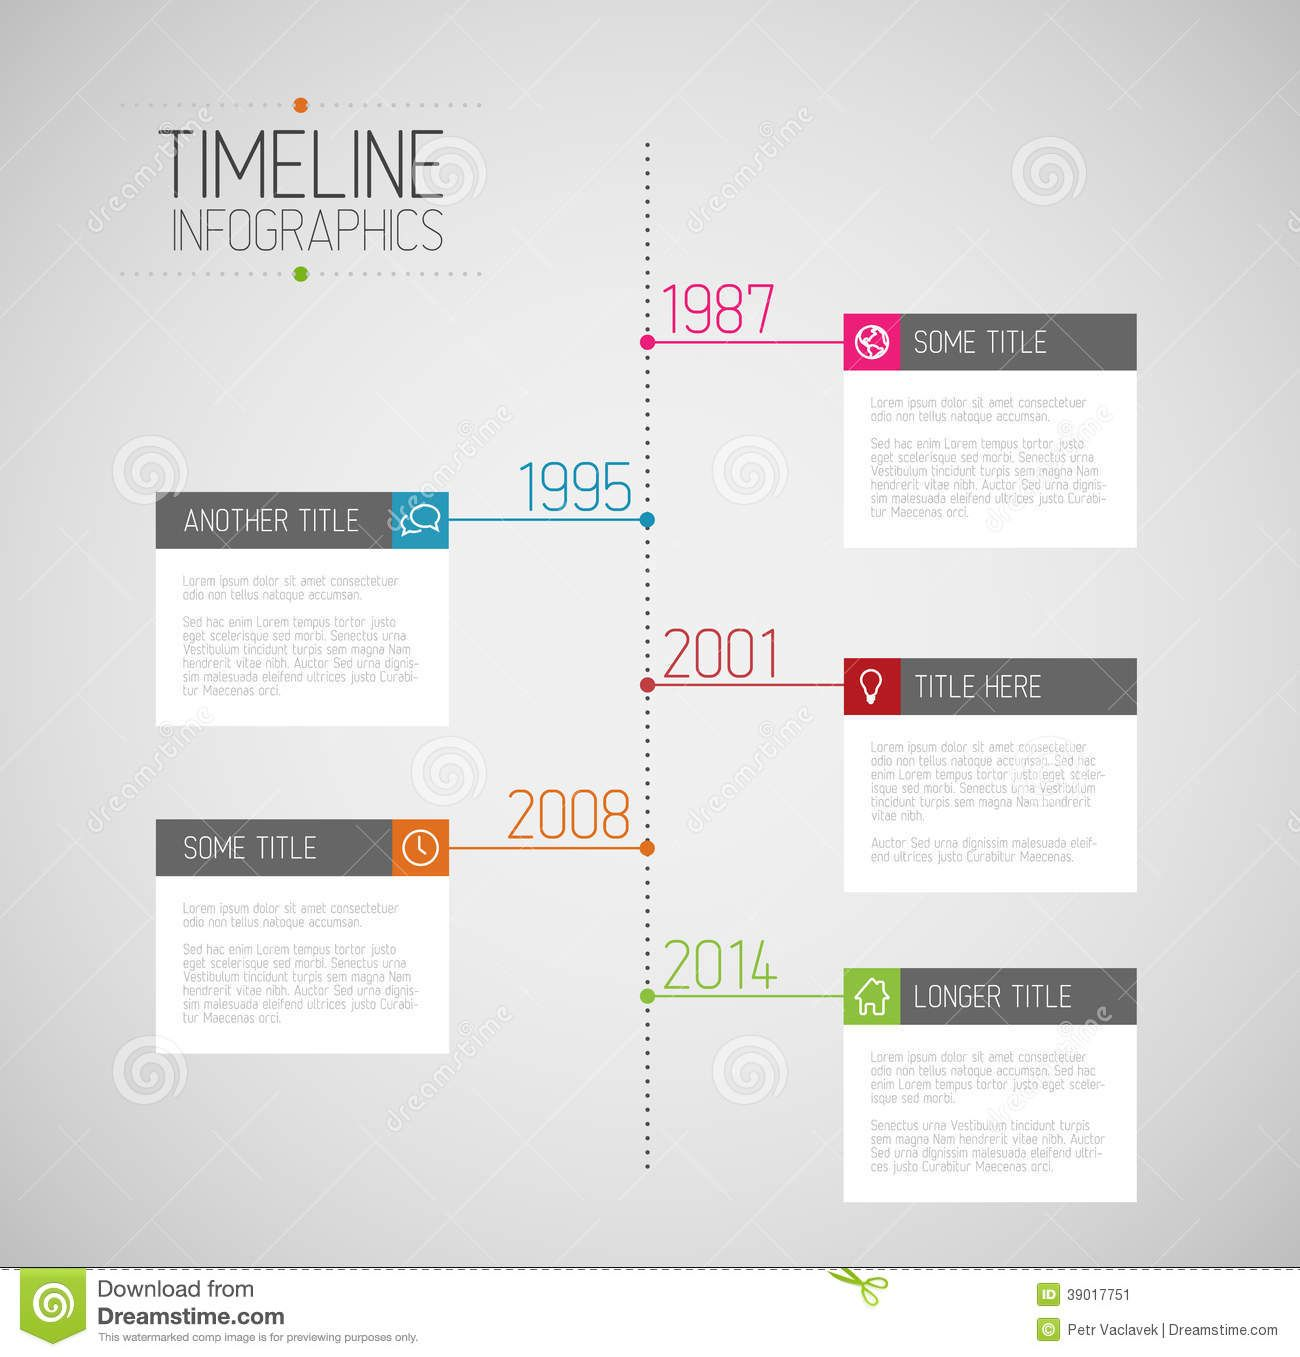 timeline | Ideas for timelines | Pinterest | Timeline, Timeline ...